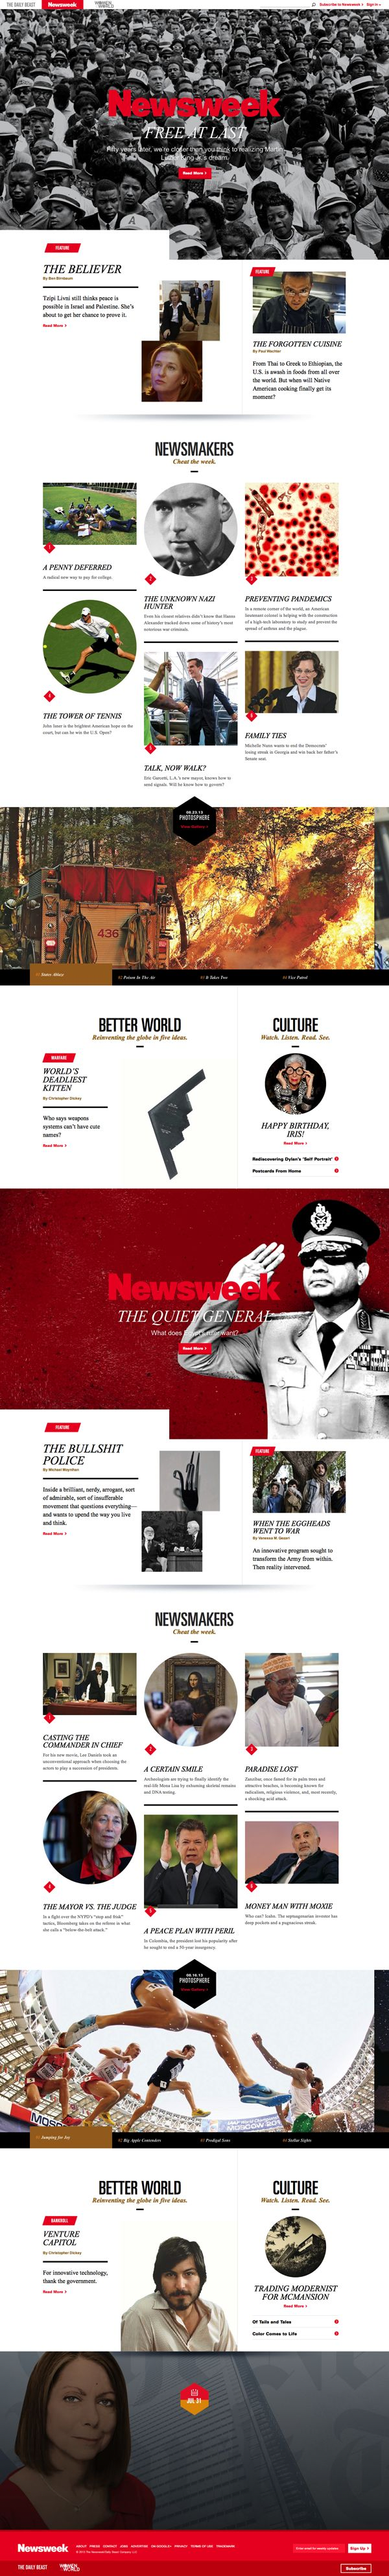 The Daily Beast Newsweek. Out-of-the-box layout. Check out the sweet page loader at the bottom